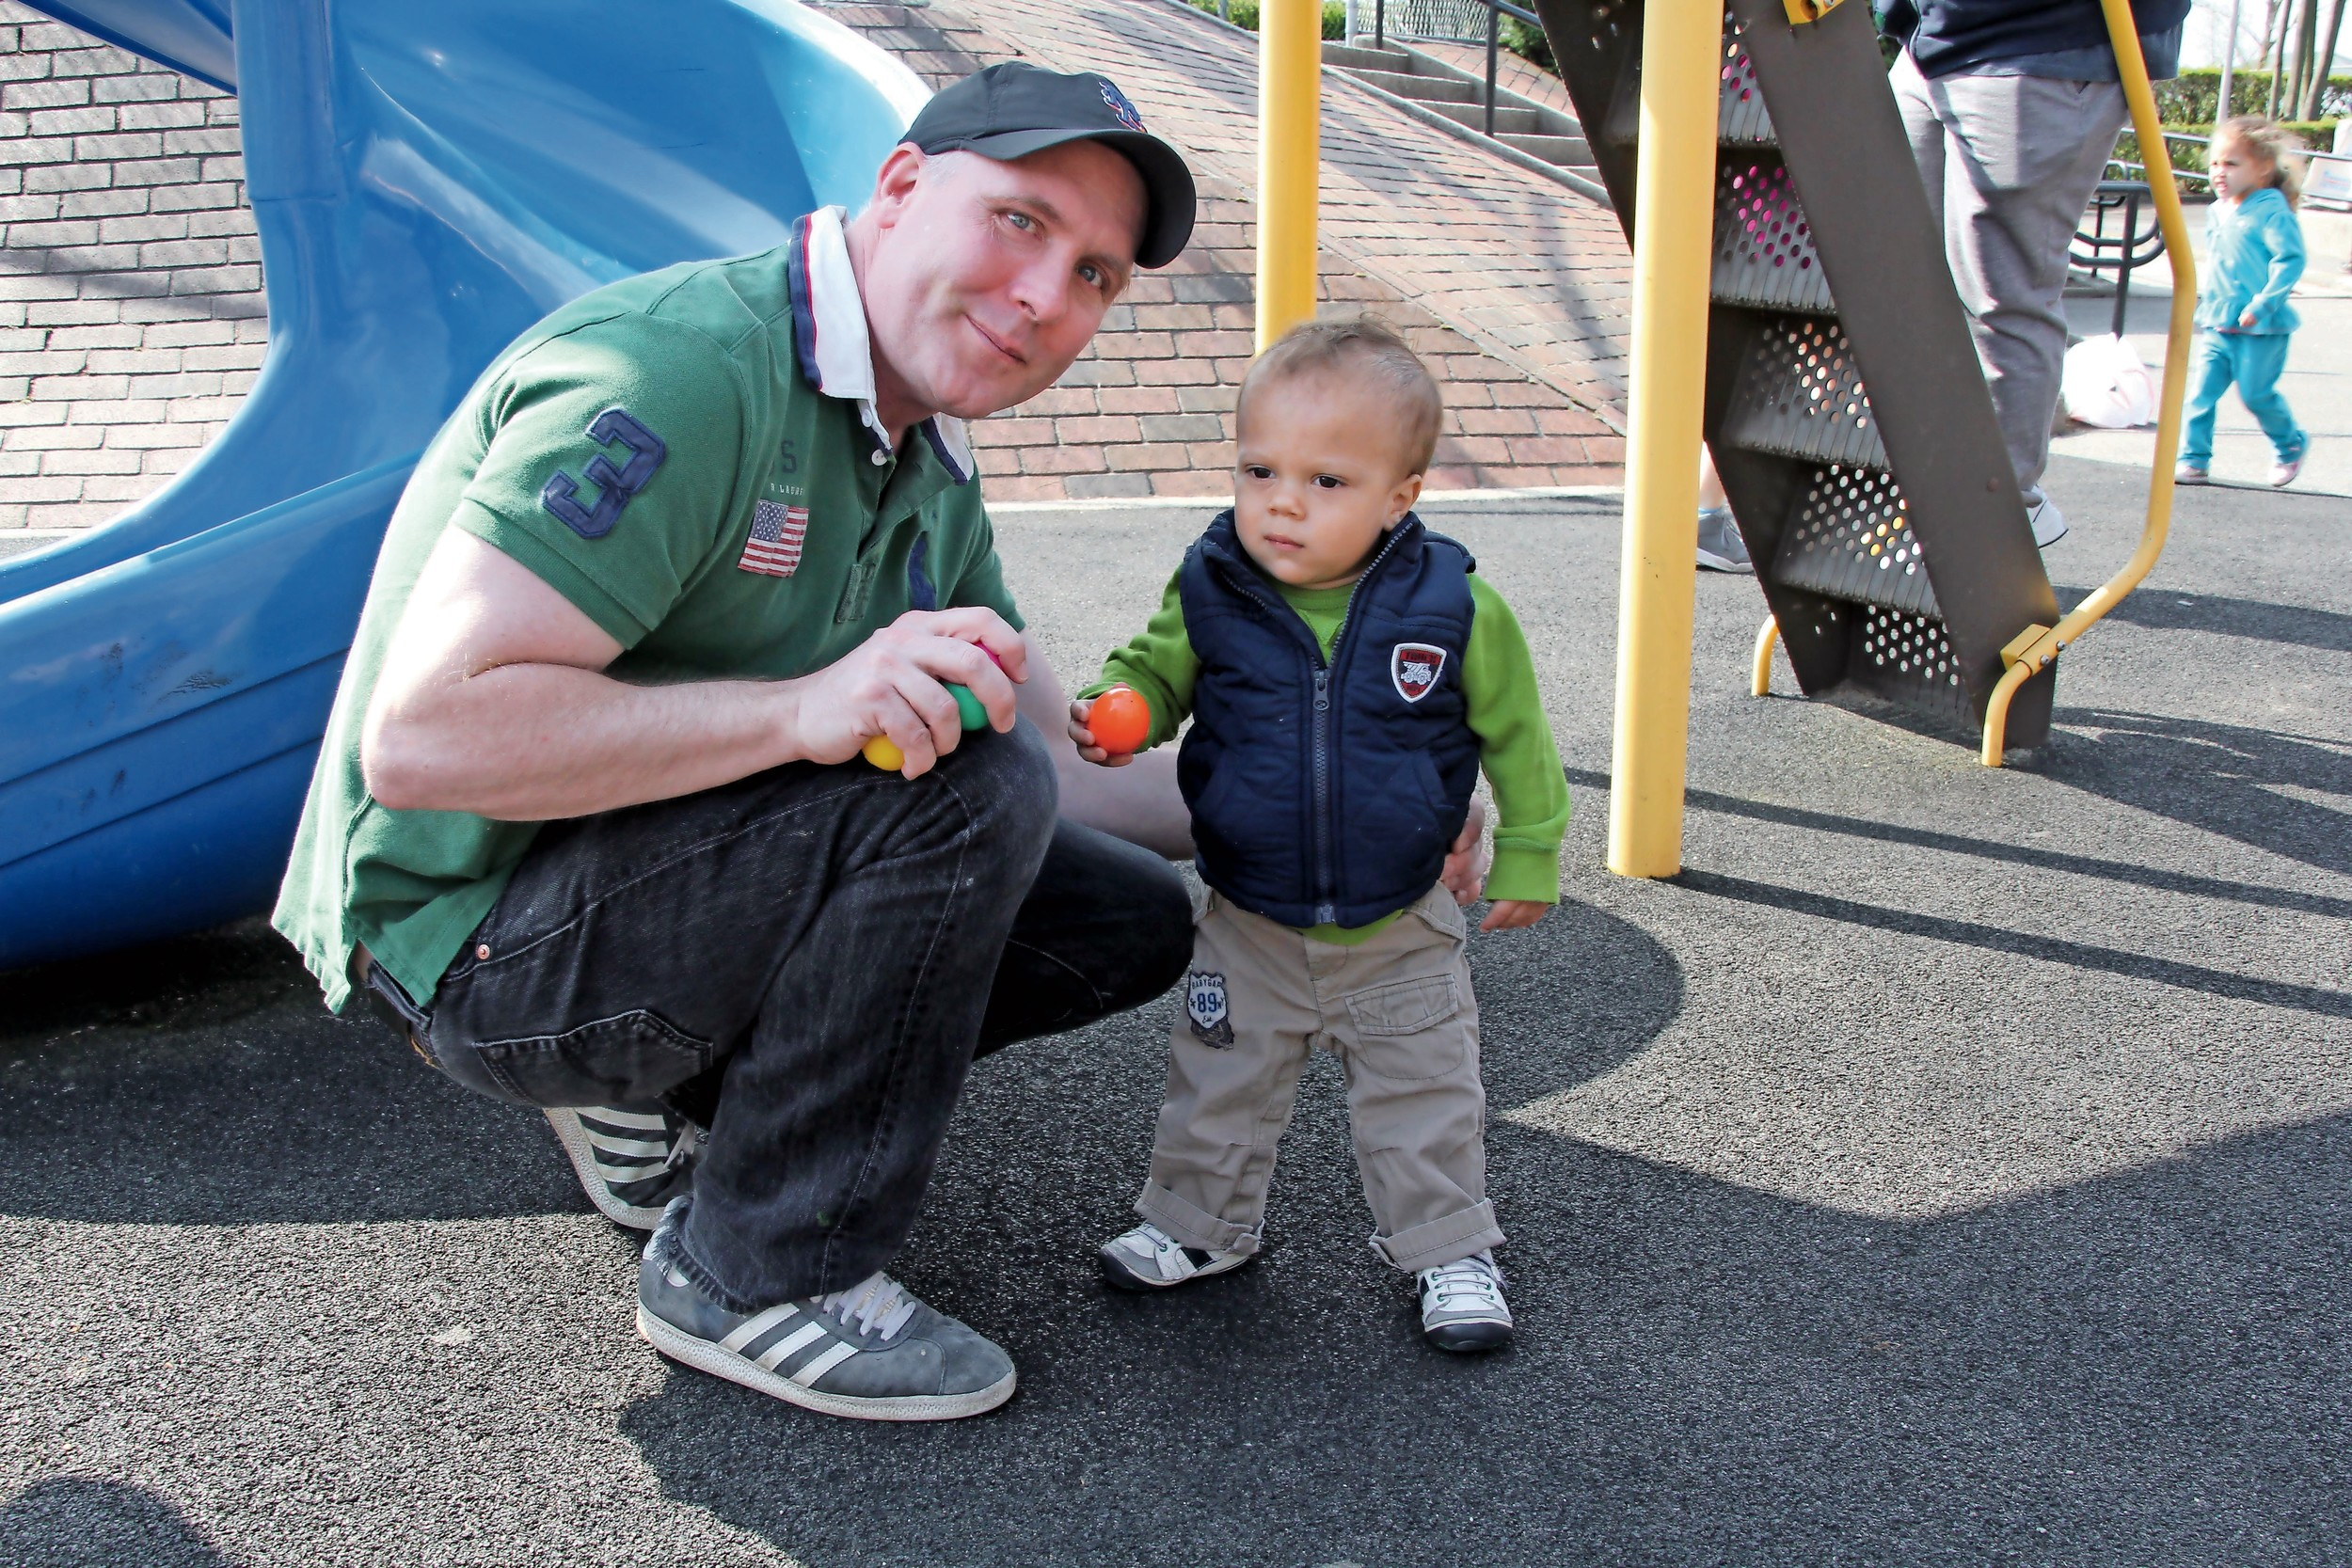 Thomas Lucas helped his son Donovan, 17 months, find an egg for his basket.